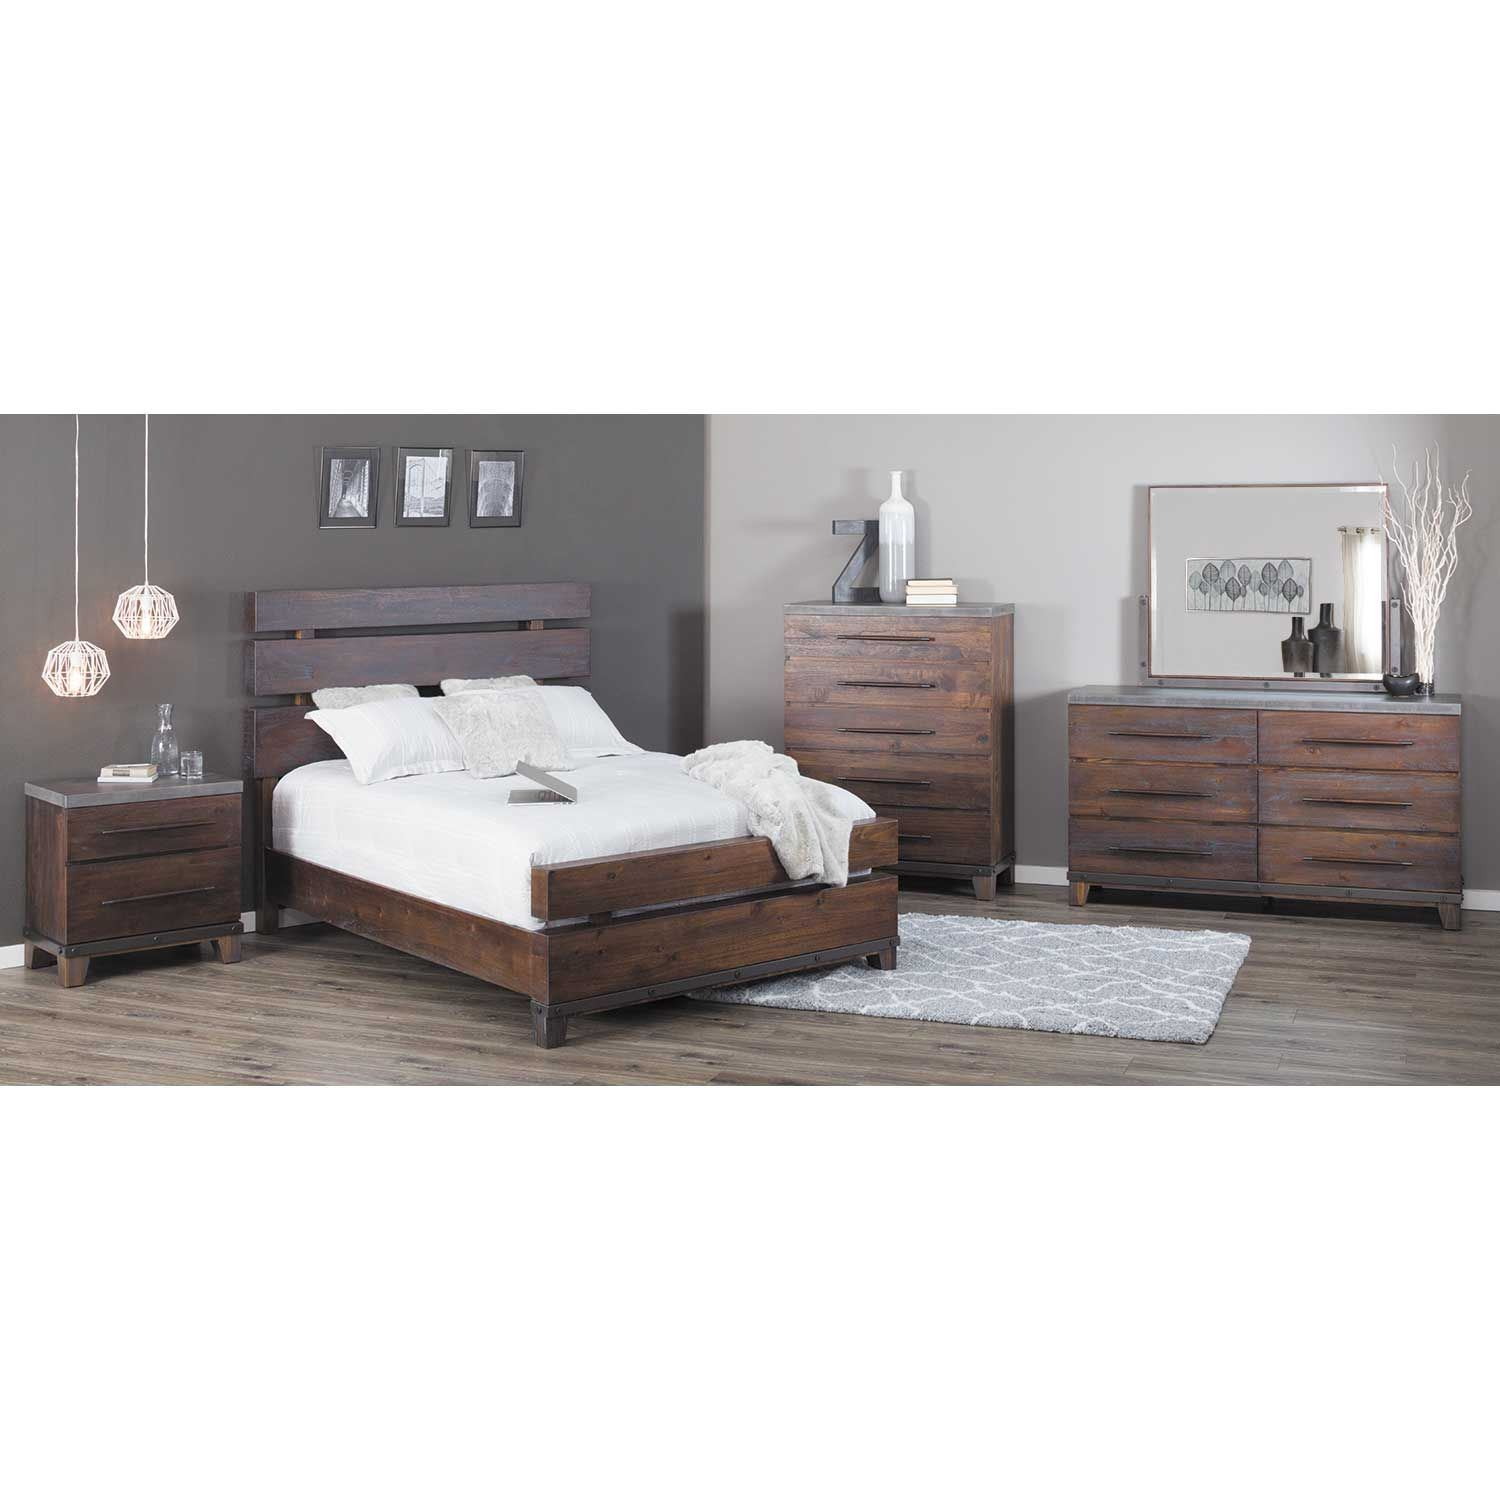 Picture of Forge Queen Panel Bed